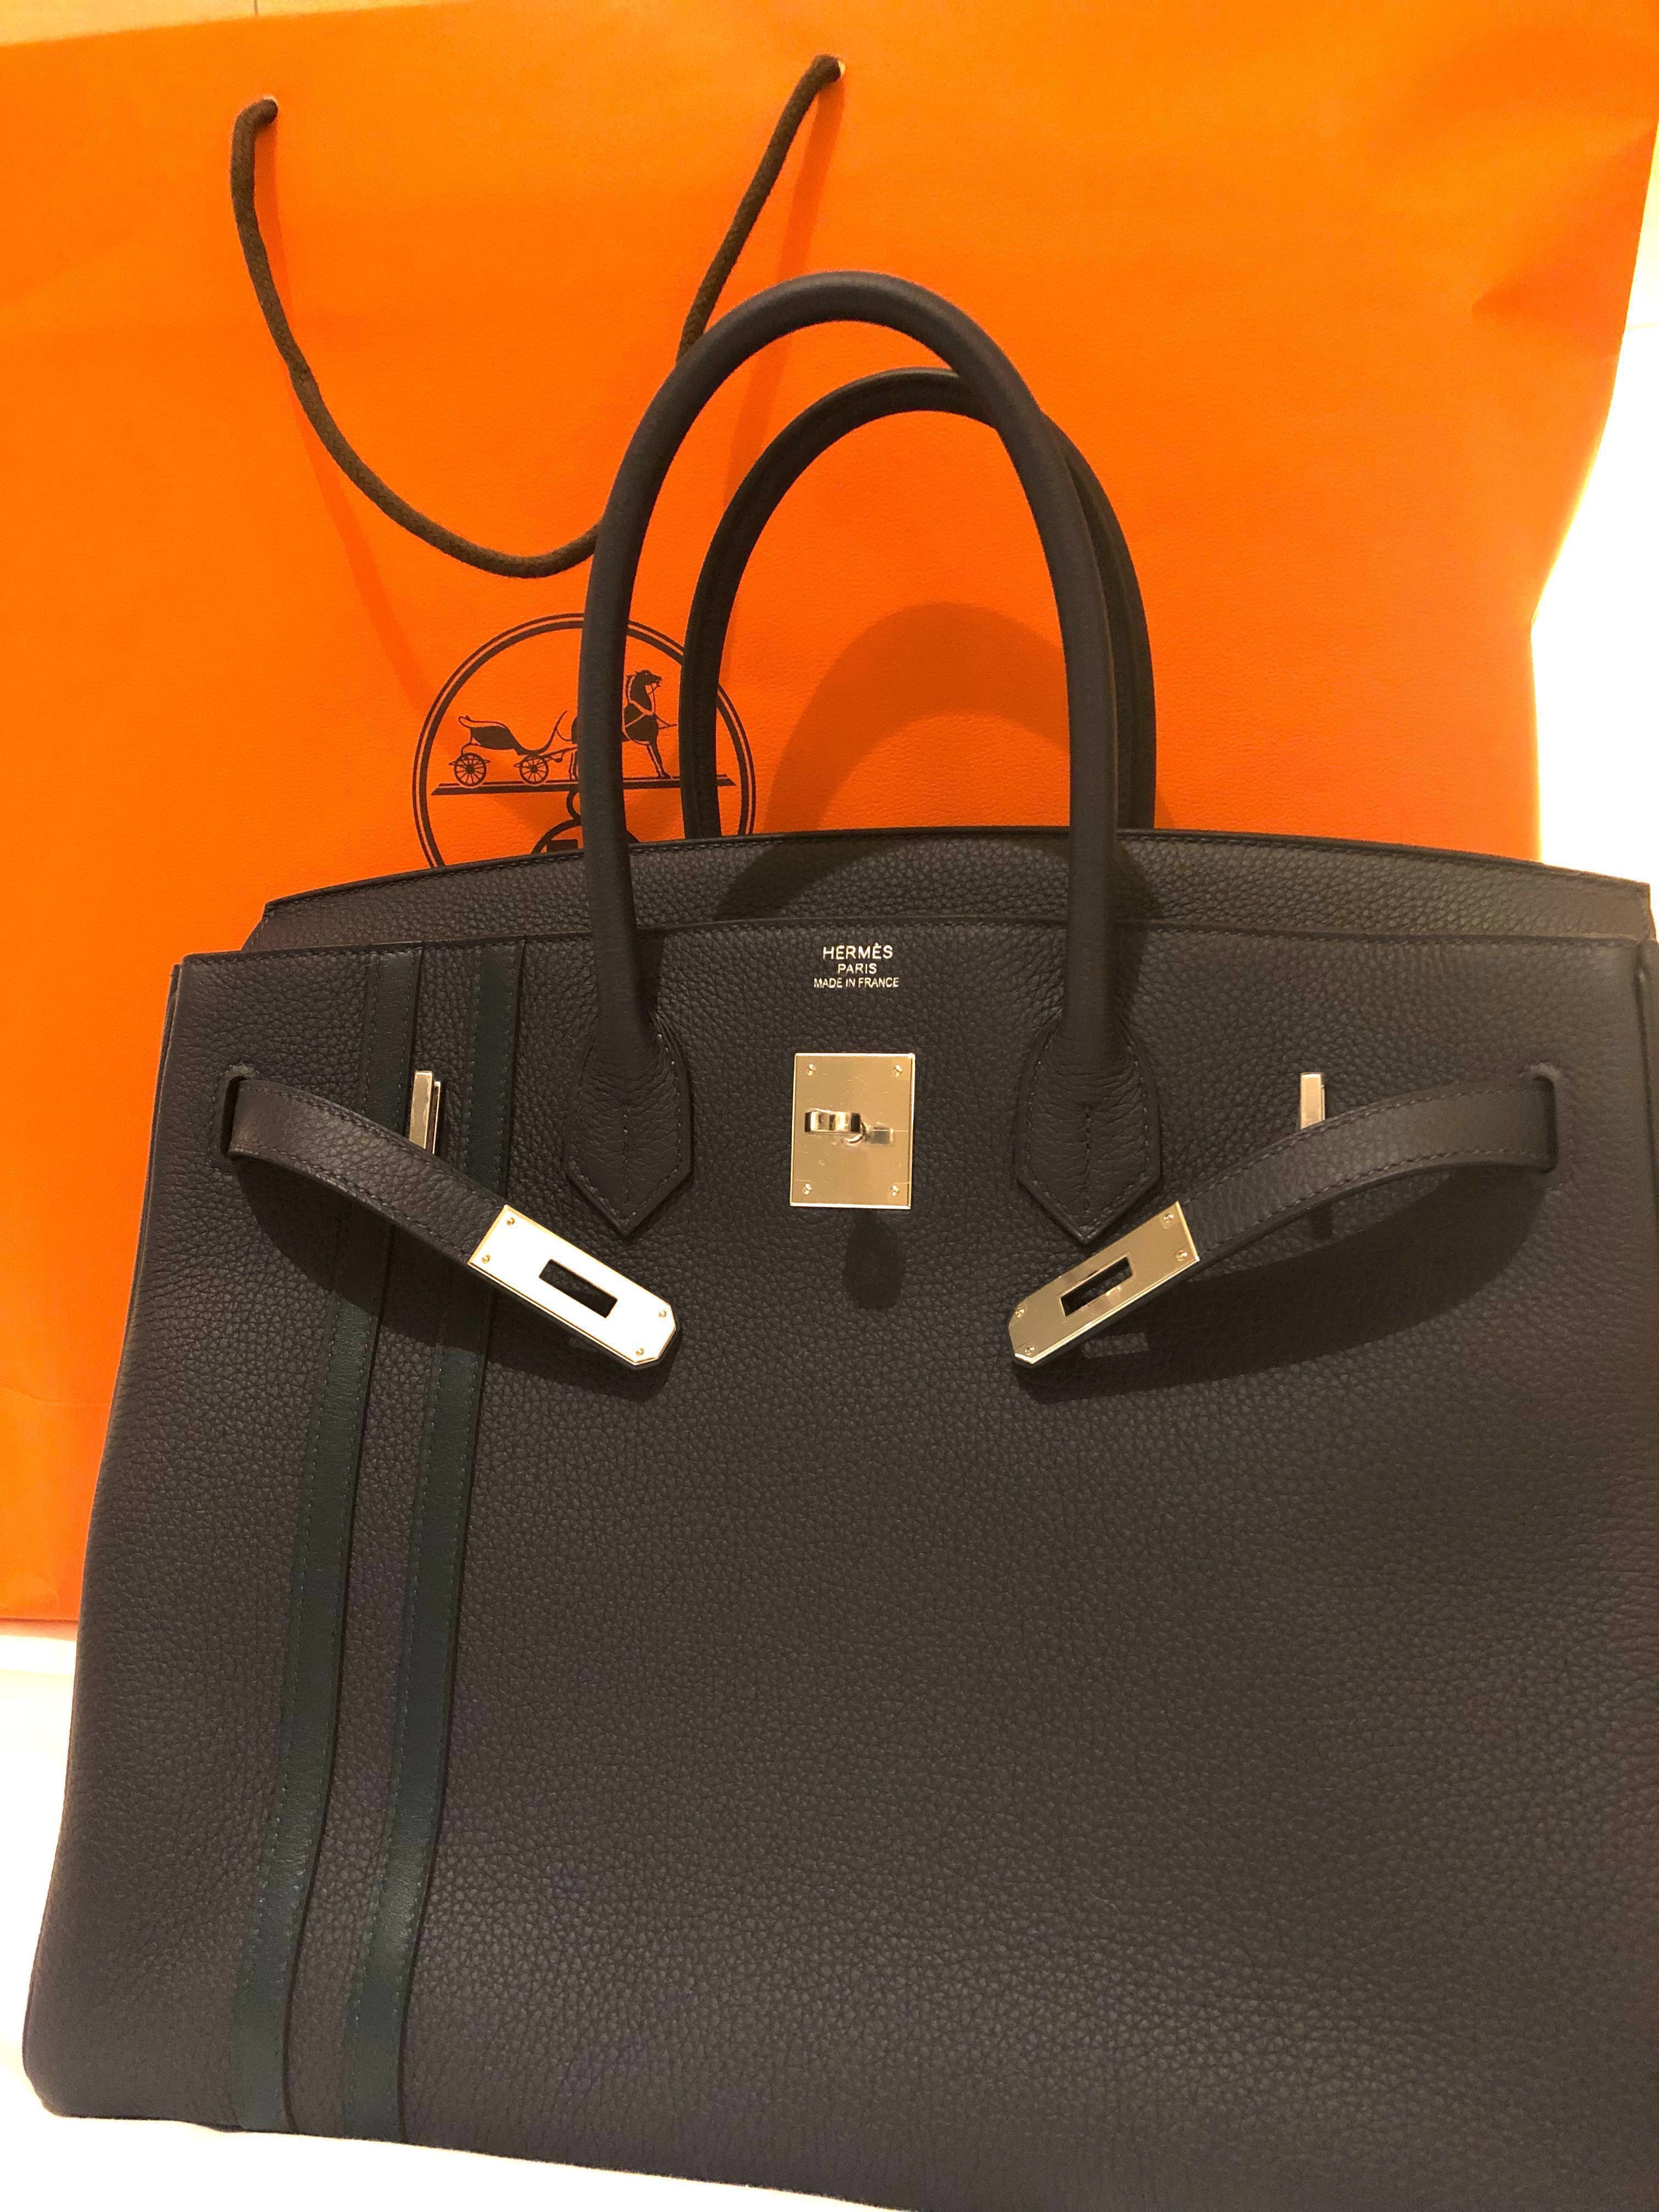 b2ed640883c555 Hermes birkin 35 limited edition stripe just bought, Luxury, Bags &  Wallets, Handbags on Carousell